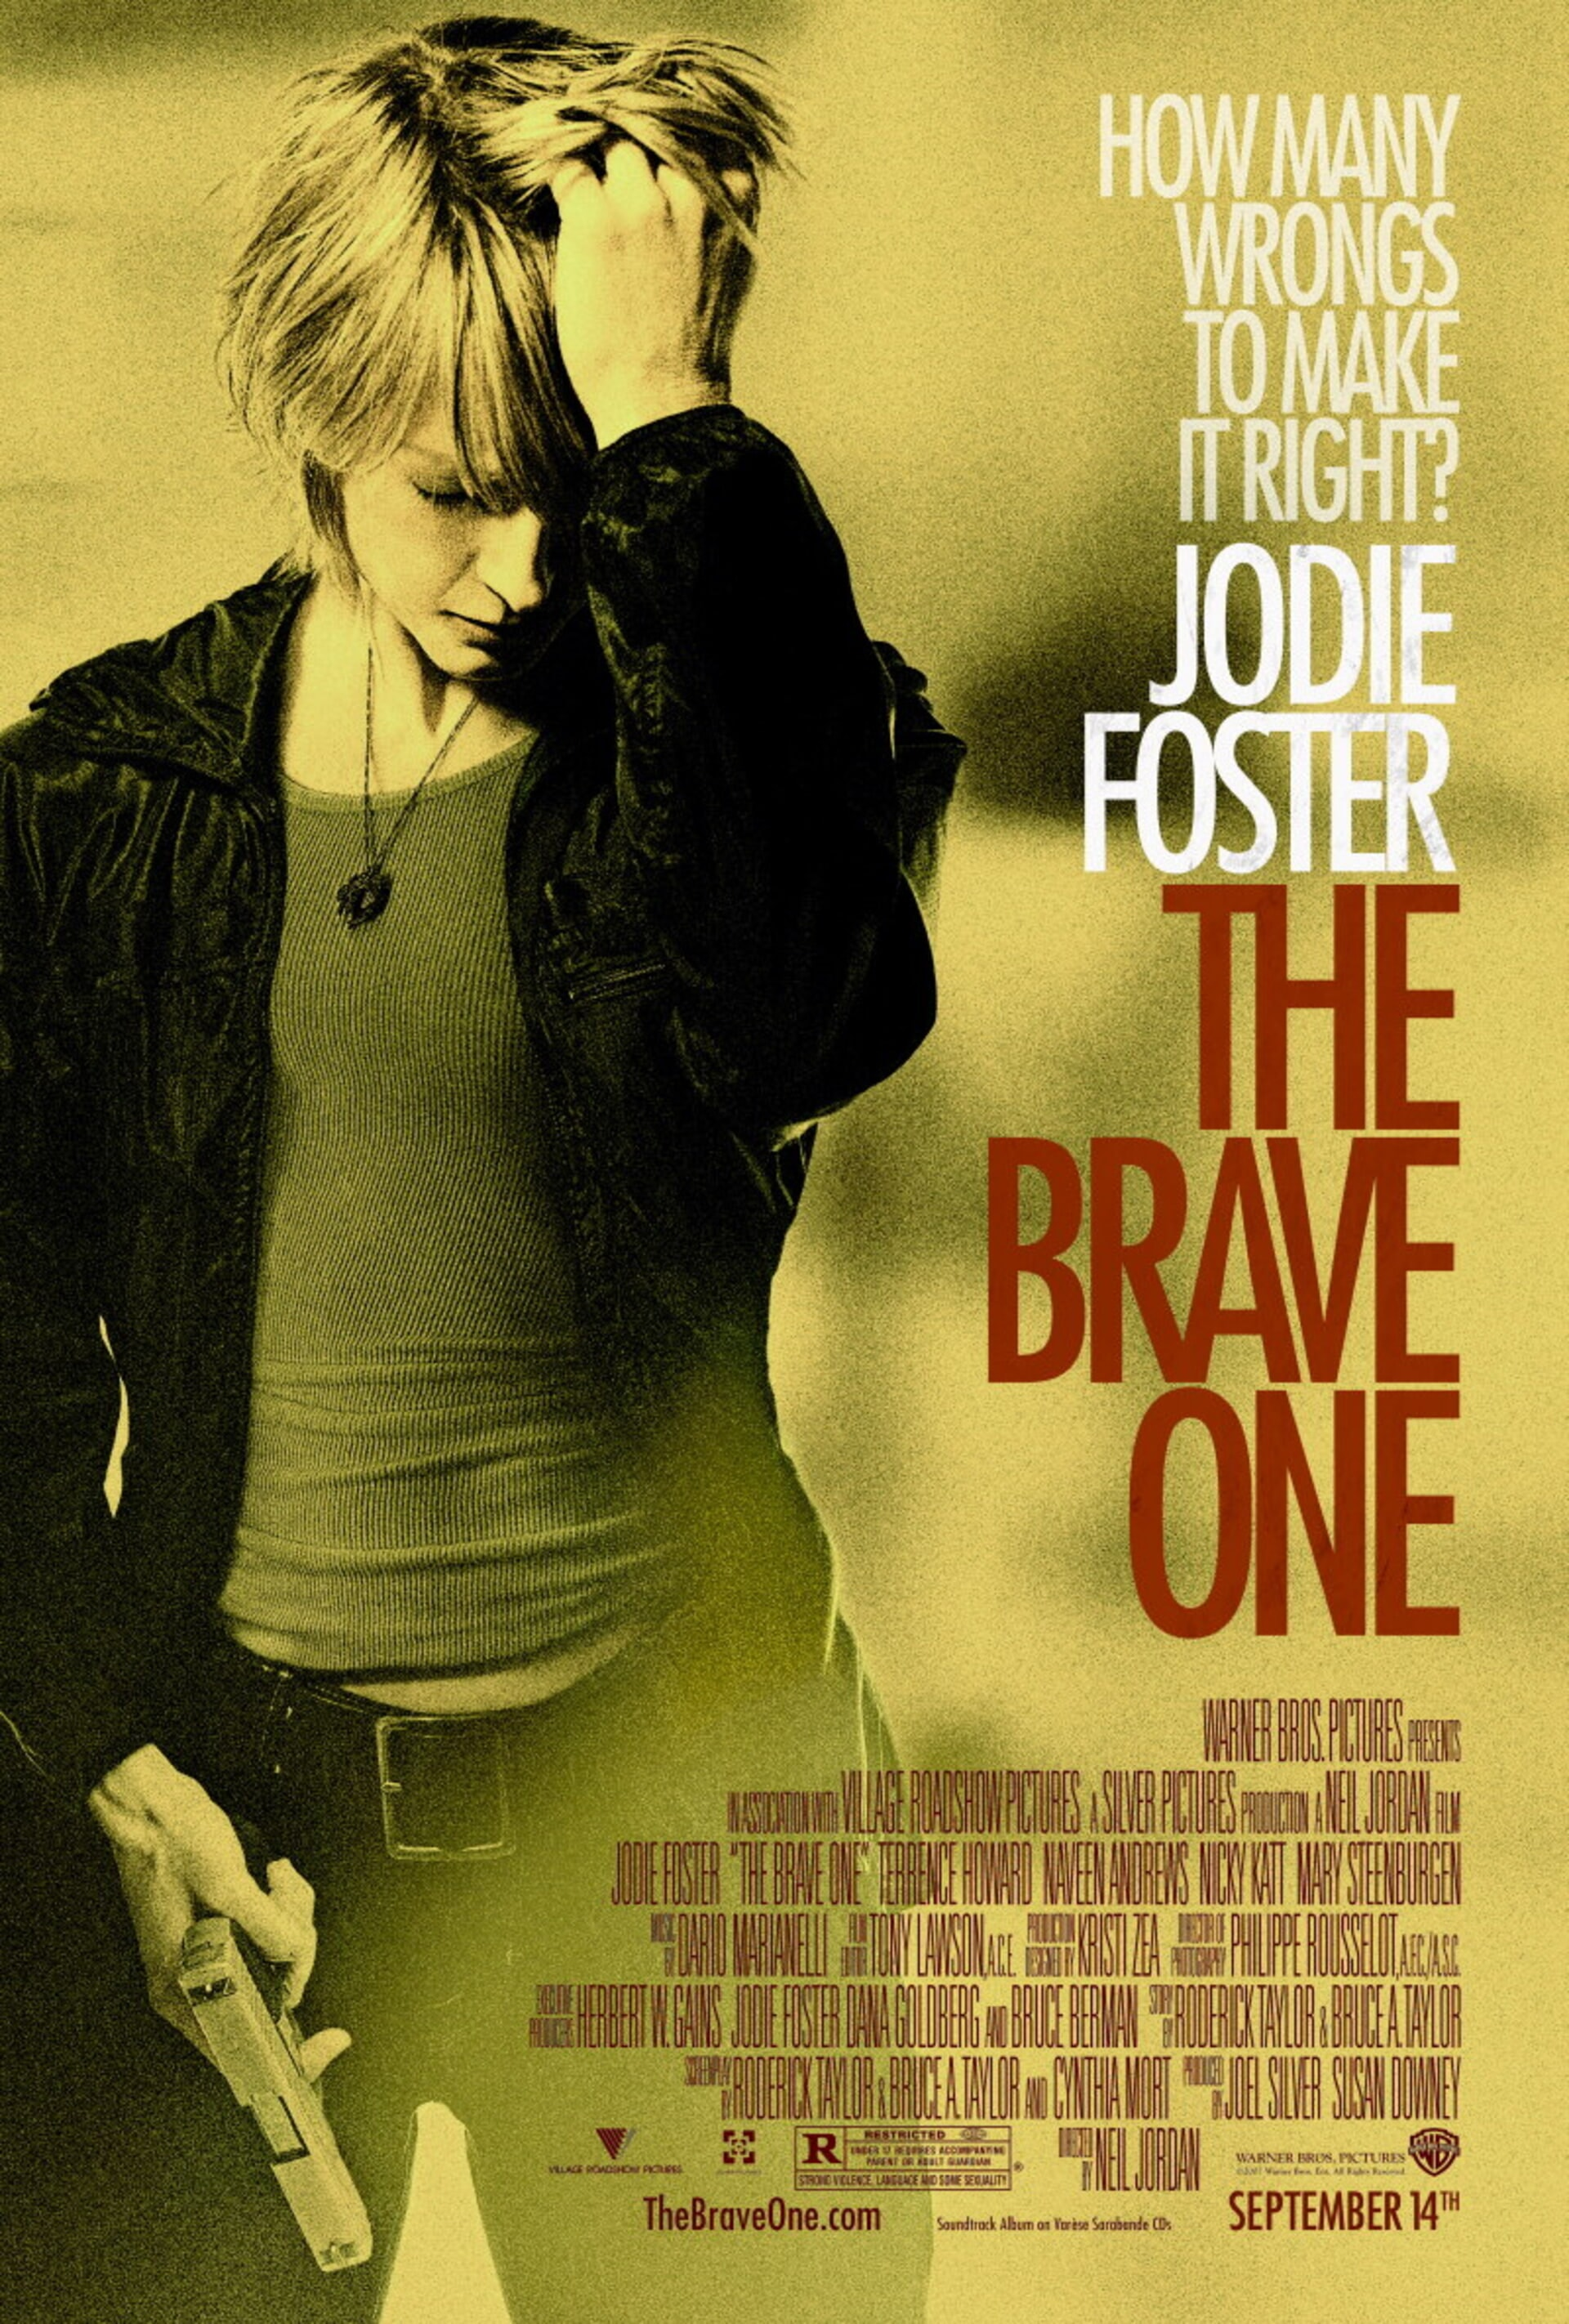 The Brave One - Poster 1